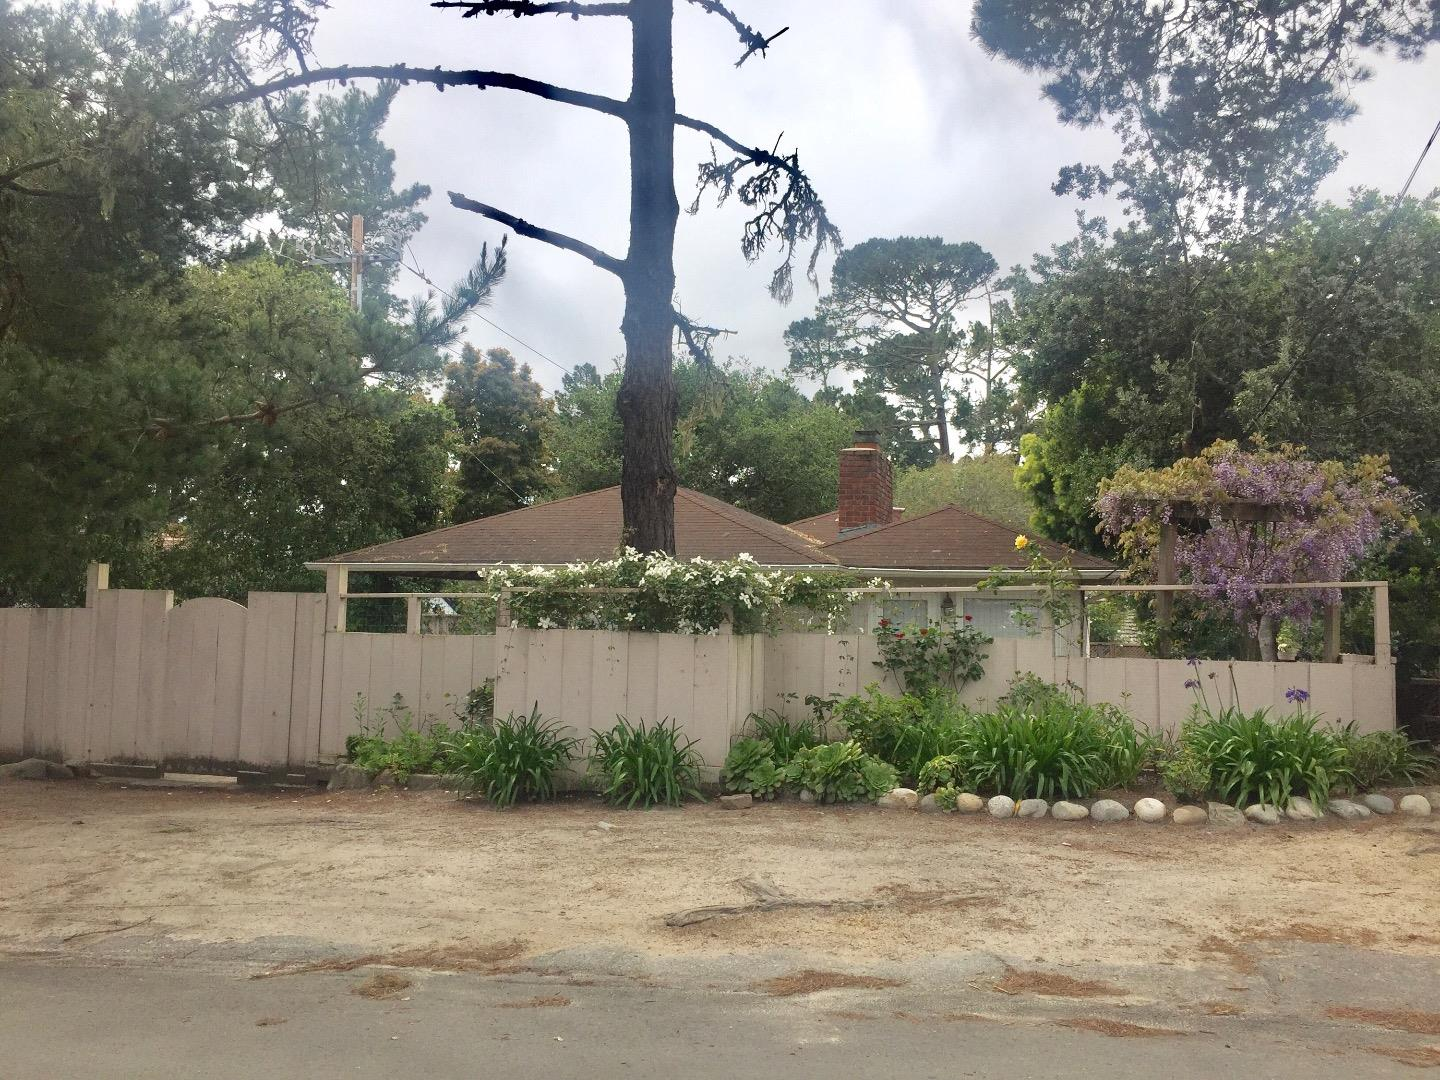 Additional photo for property listing at 0 Santa Rita & 2nd NW Corner St  CARMEL, CALIFORNIA 93921